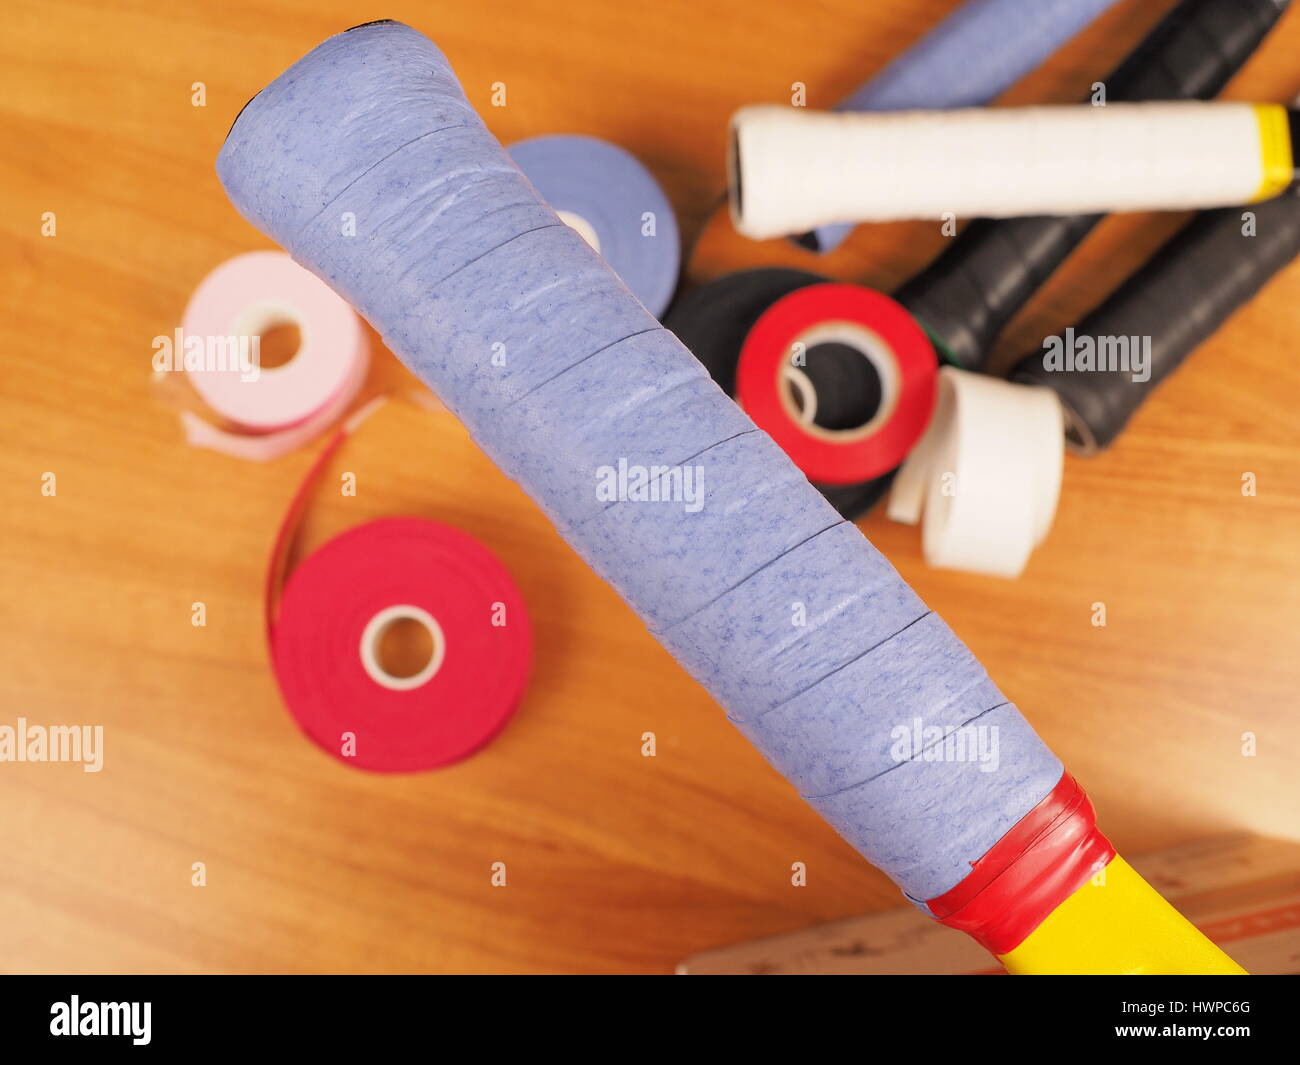 Freshly wrapped blue over grip on a Tennis racket providing a tacky surface for a firm grip, with grip work materials - Stock Image